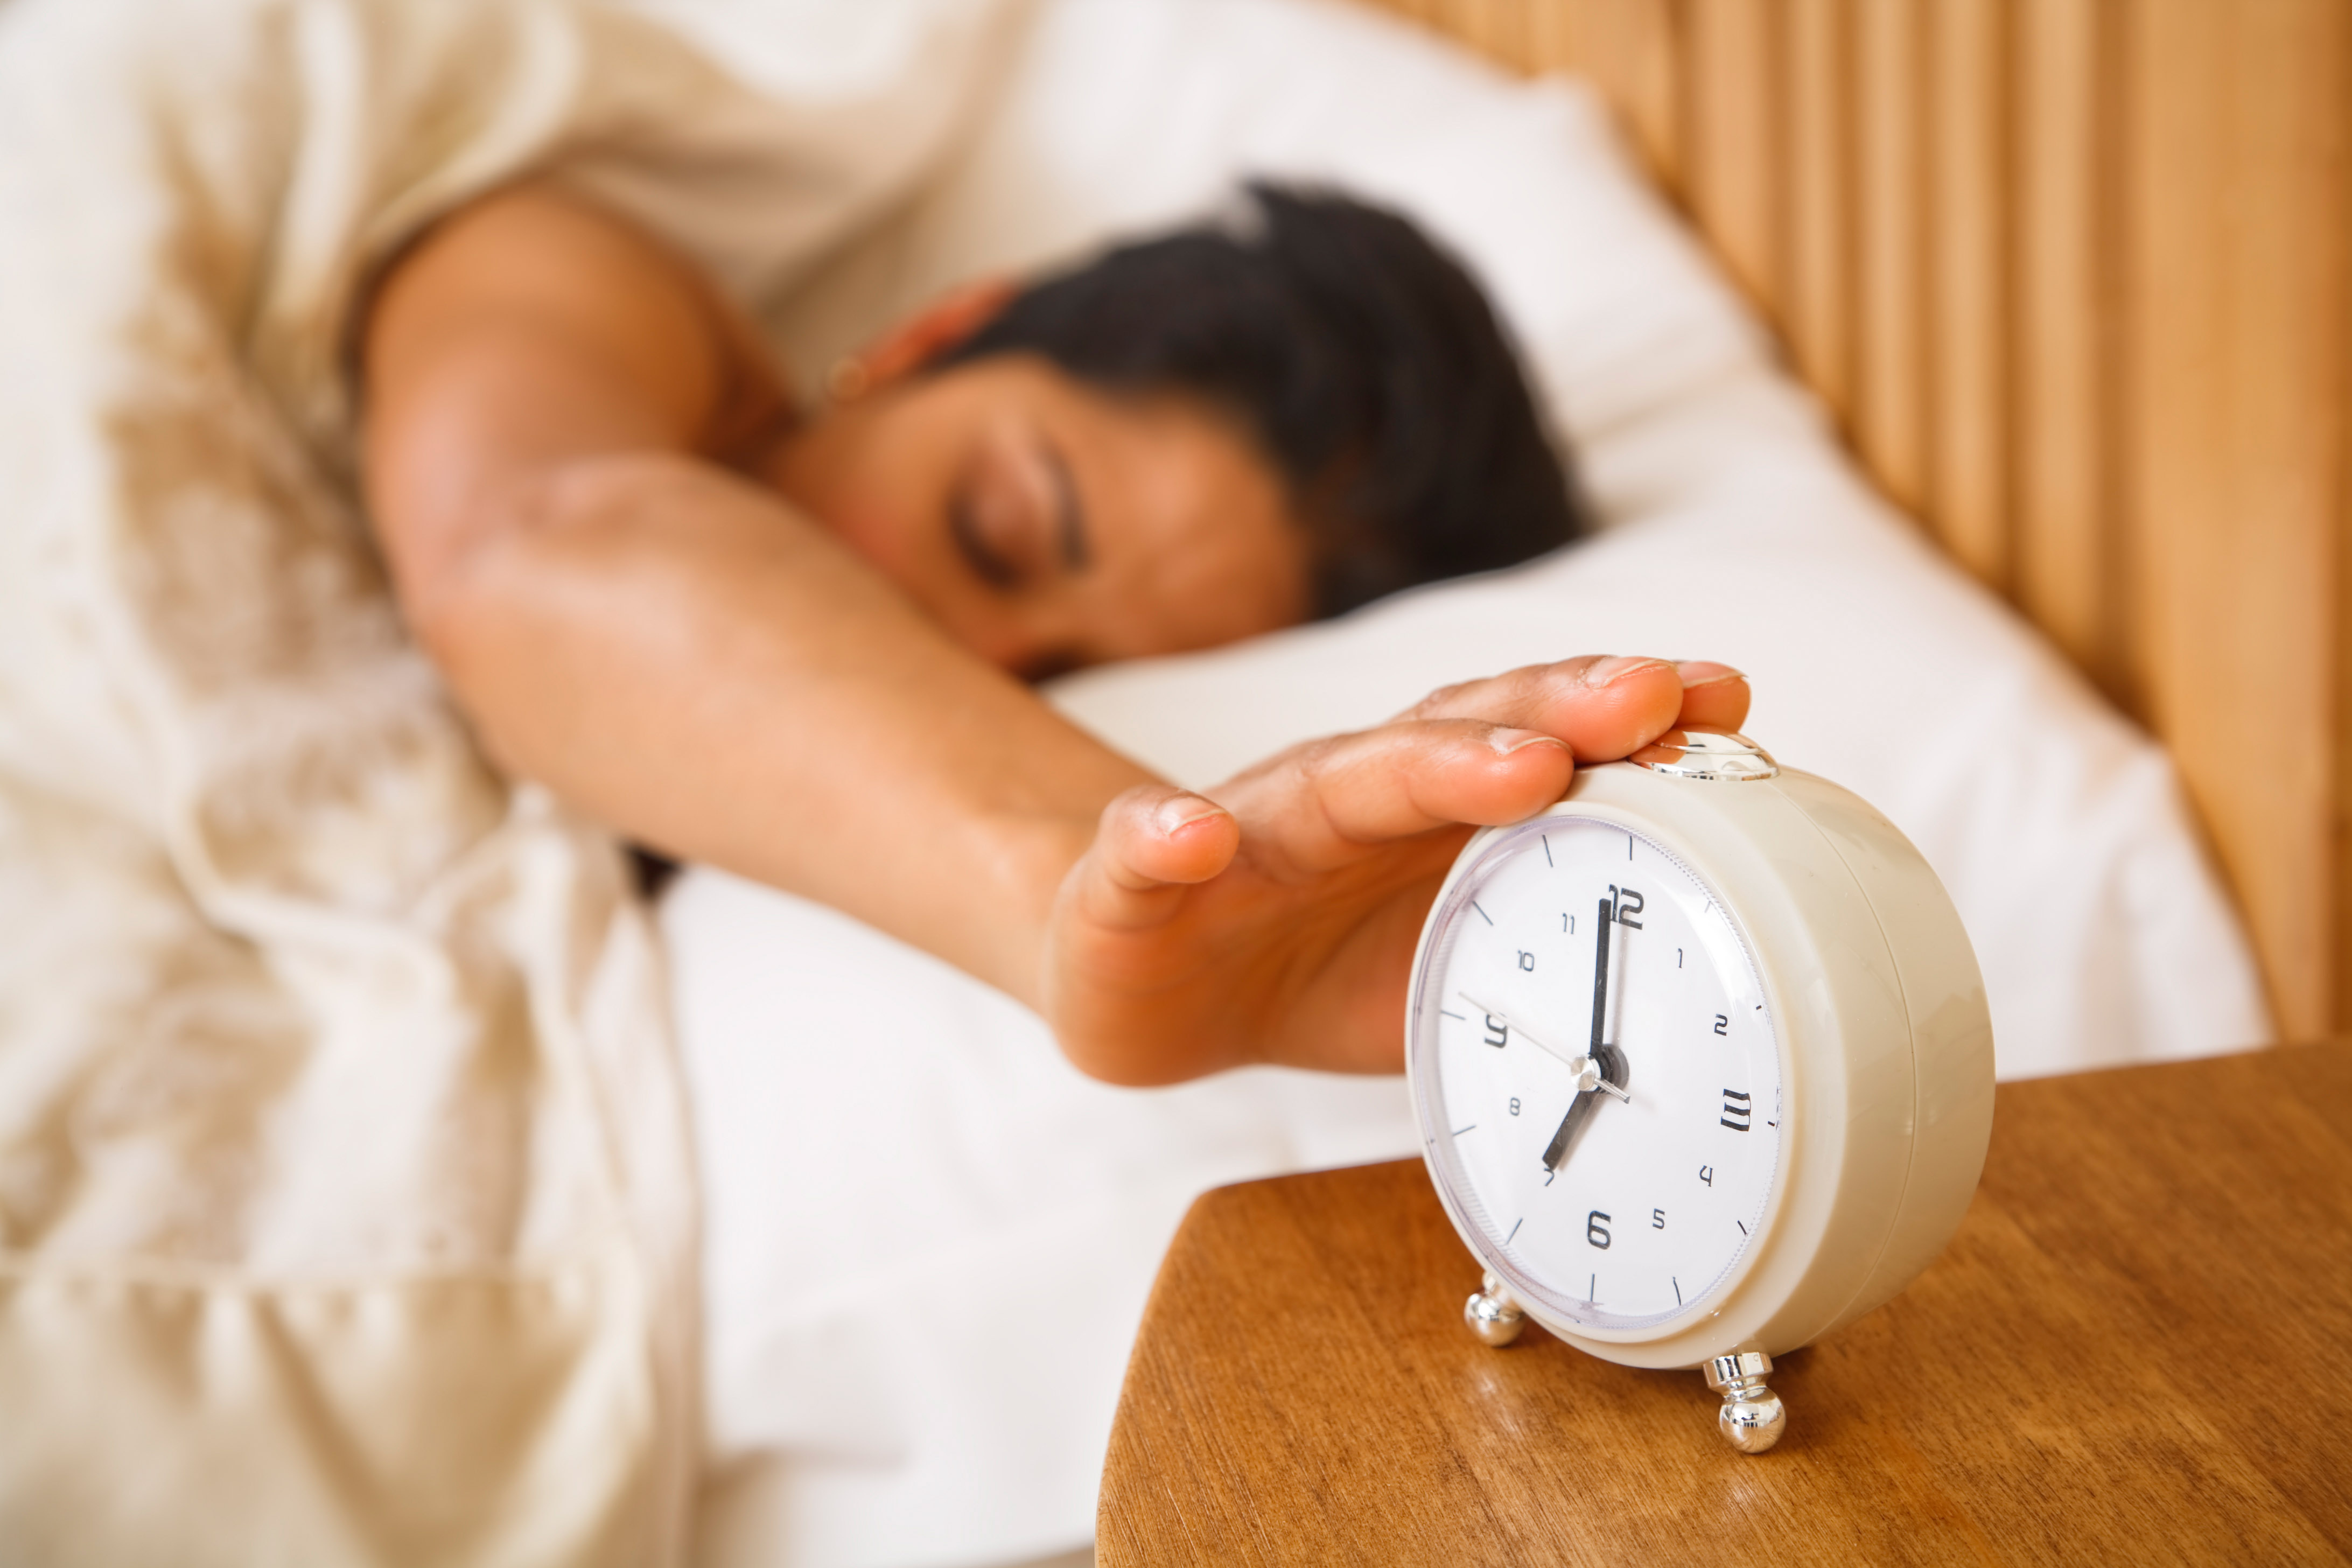 Sleepy Woman Reaching for Alarm Clock